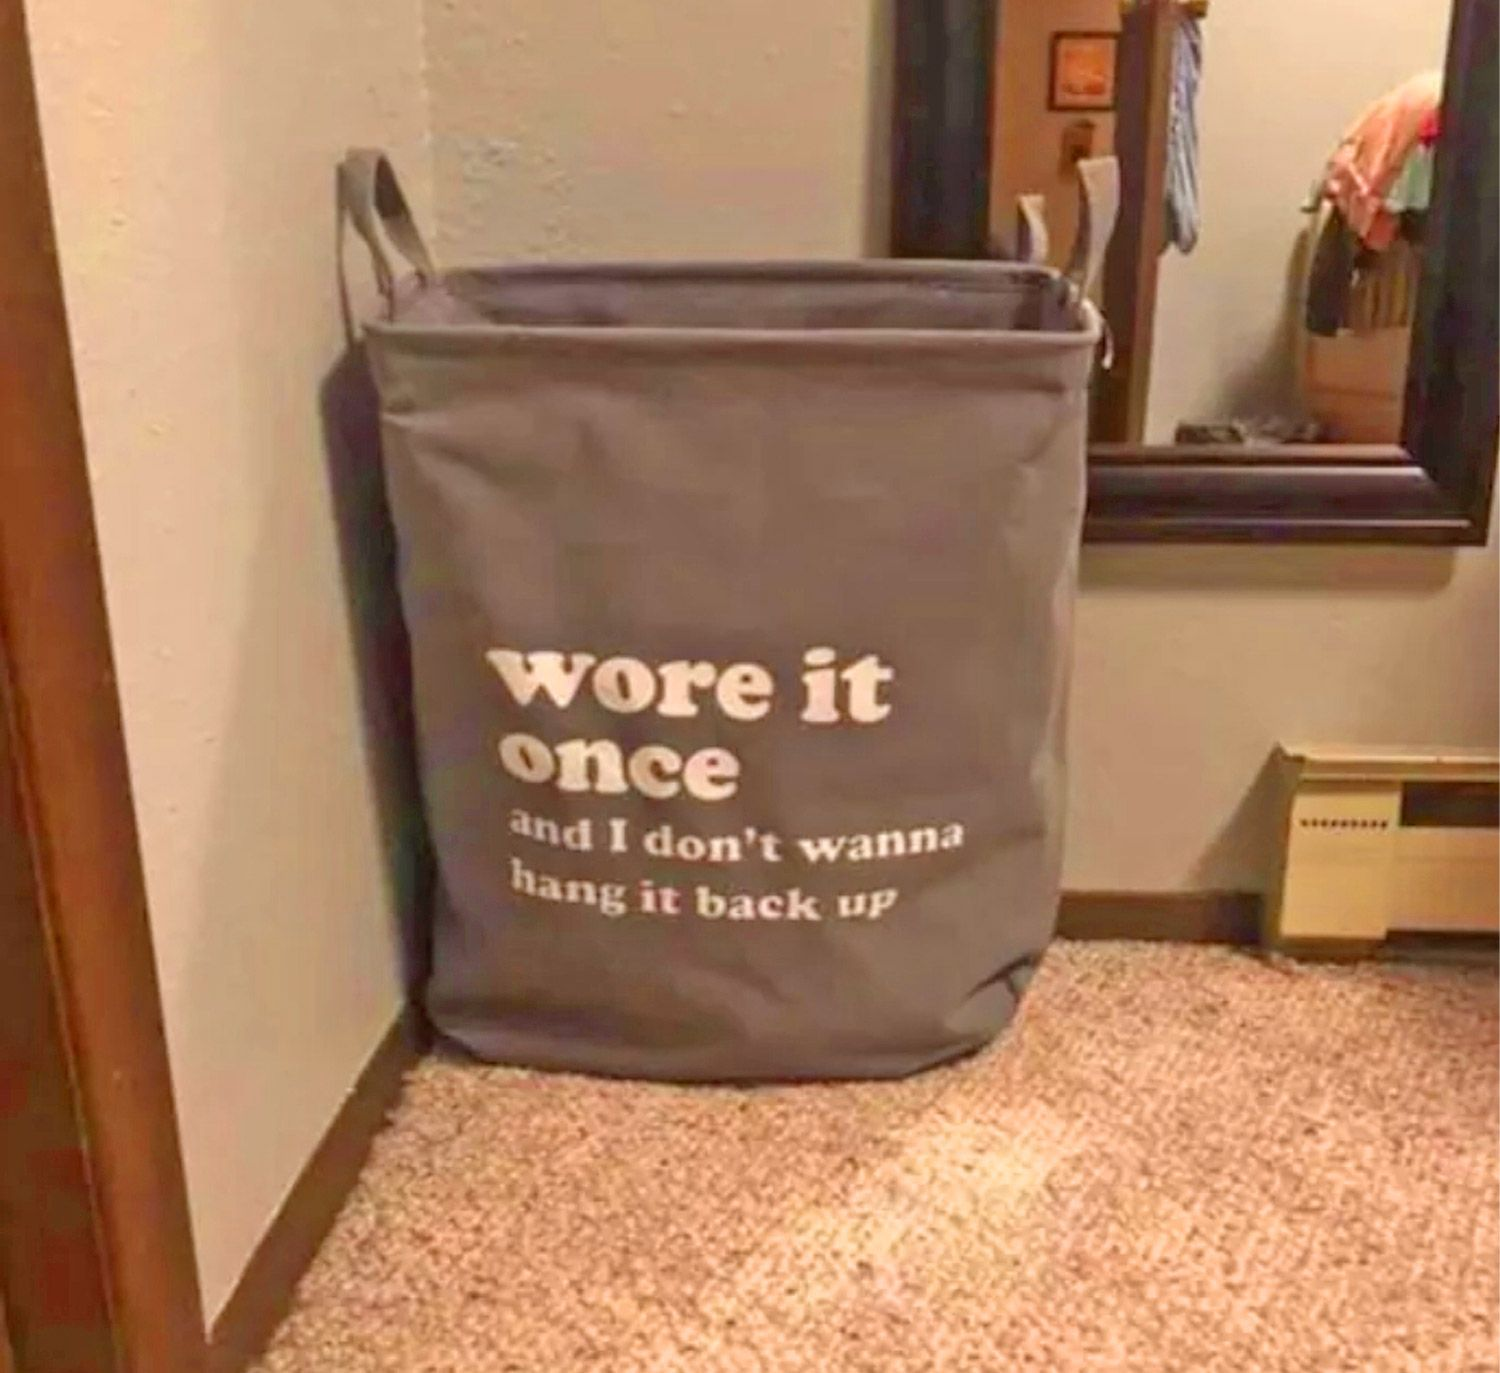 There S Now A Wore It Once Laundry Bag That Can Replace That